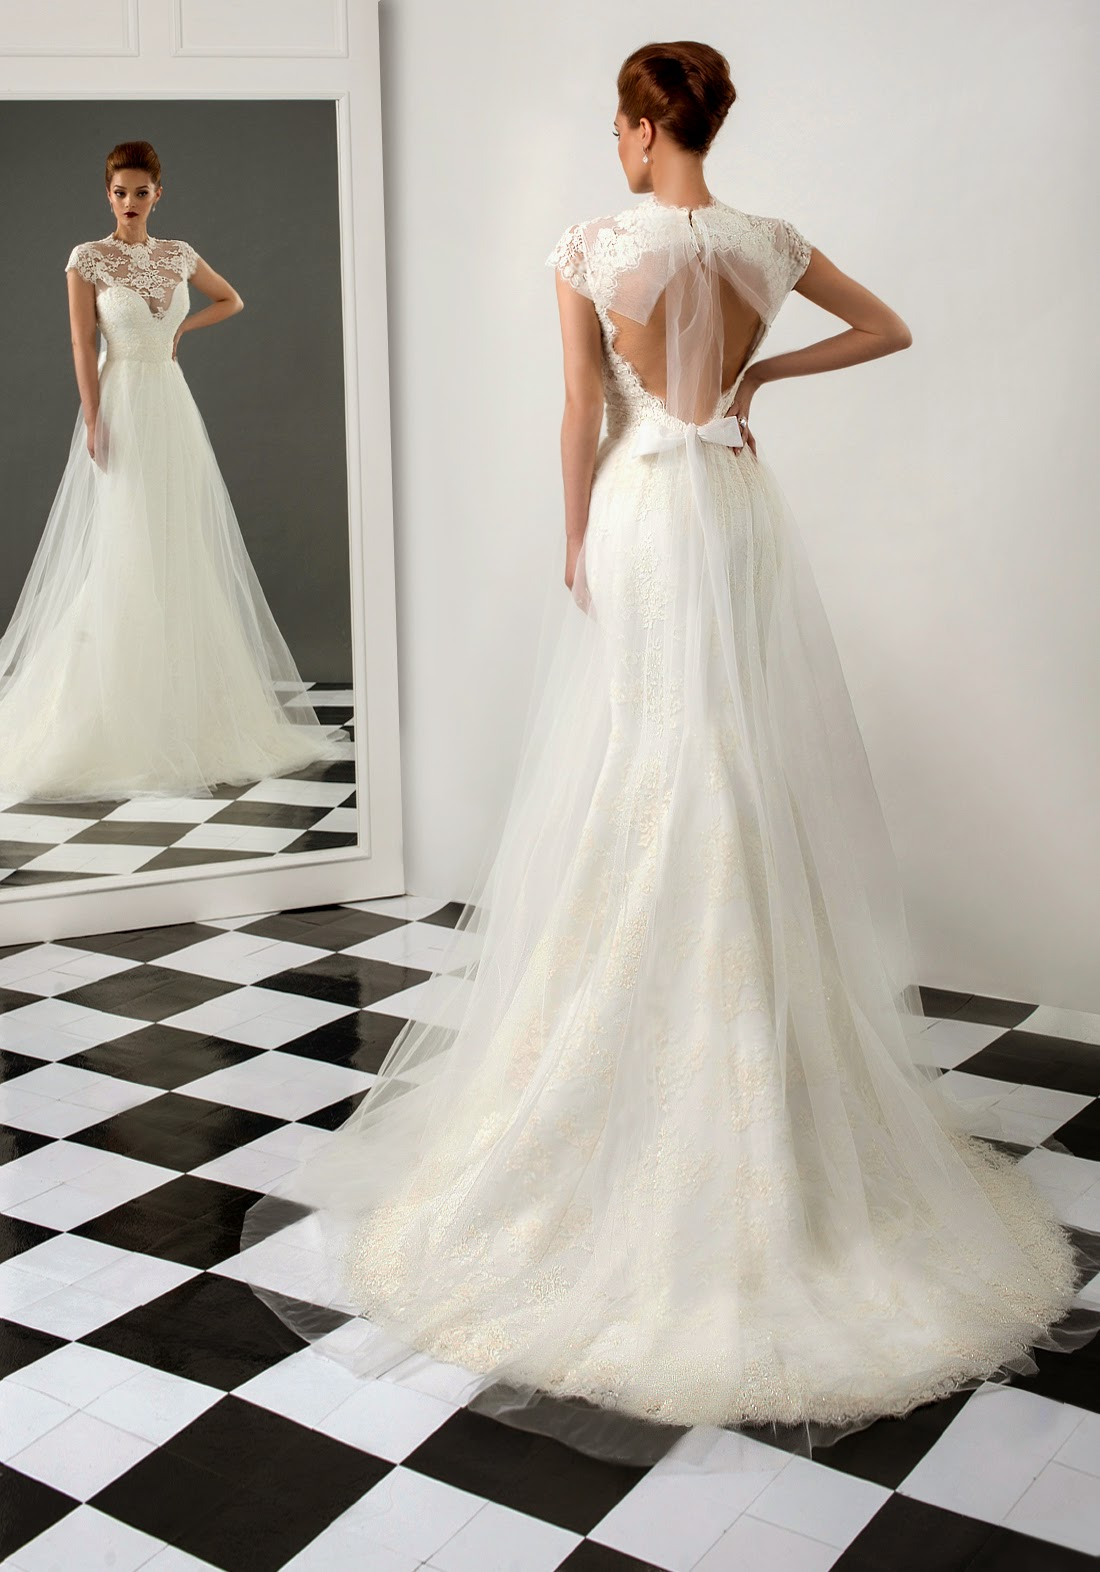 2015 Wedding Dresses by BIEN SAVVY